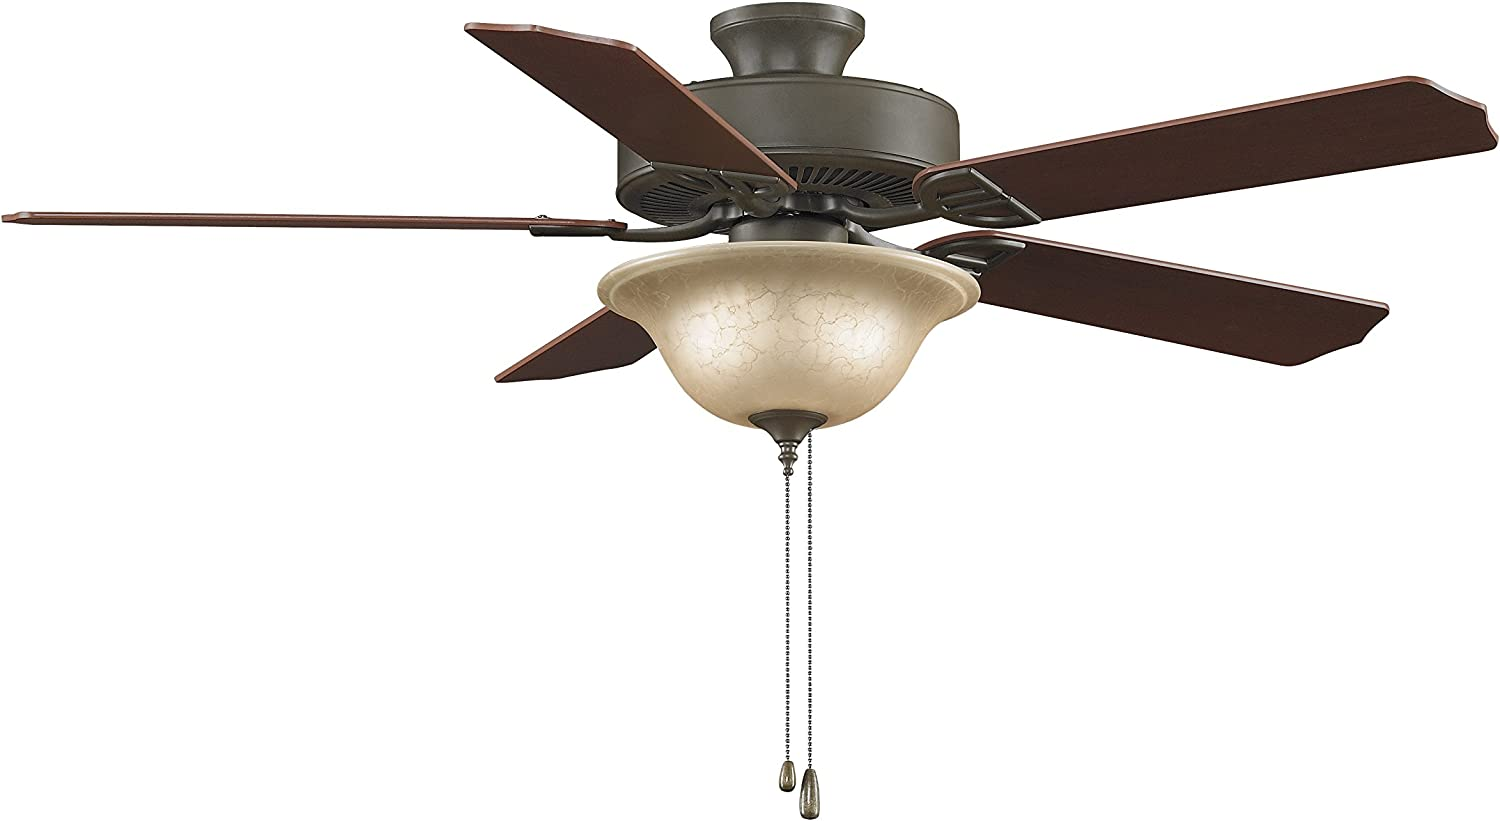 Fanimation Aire Décor - 52 inch - Oil-Rubbed Bronze with Glass Bowl Light Kit - 220v with Pull-Chain - BP220OB1-220